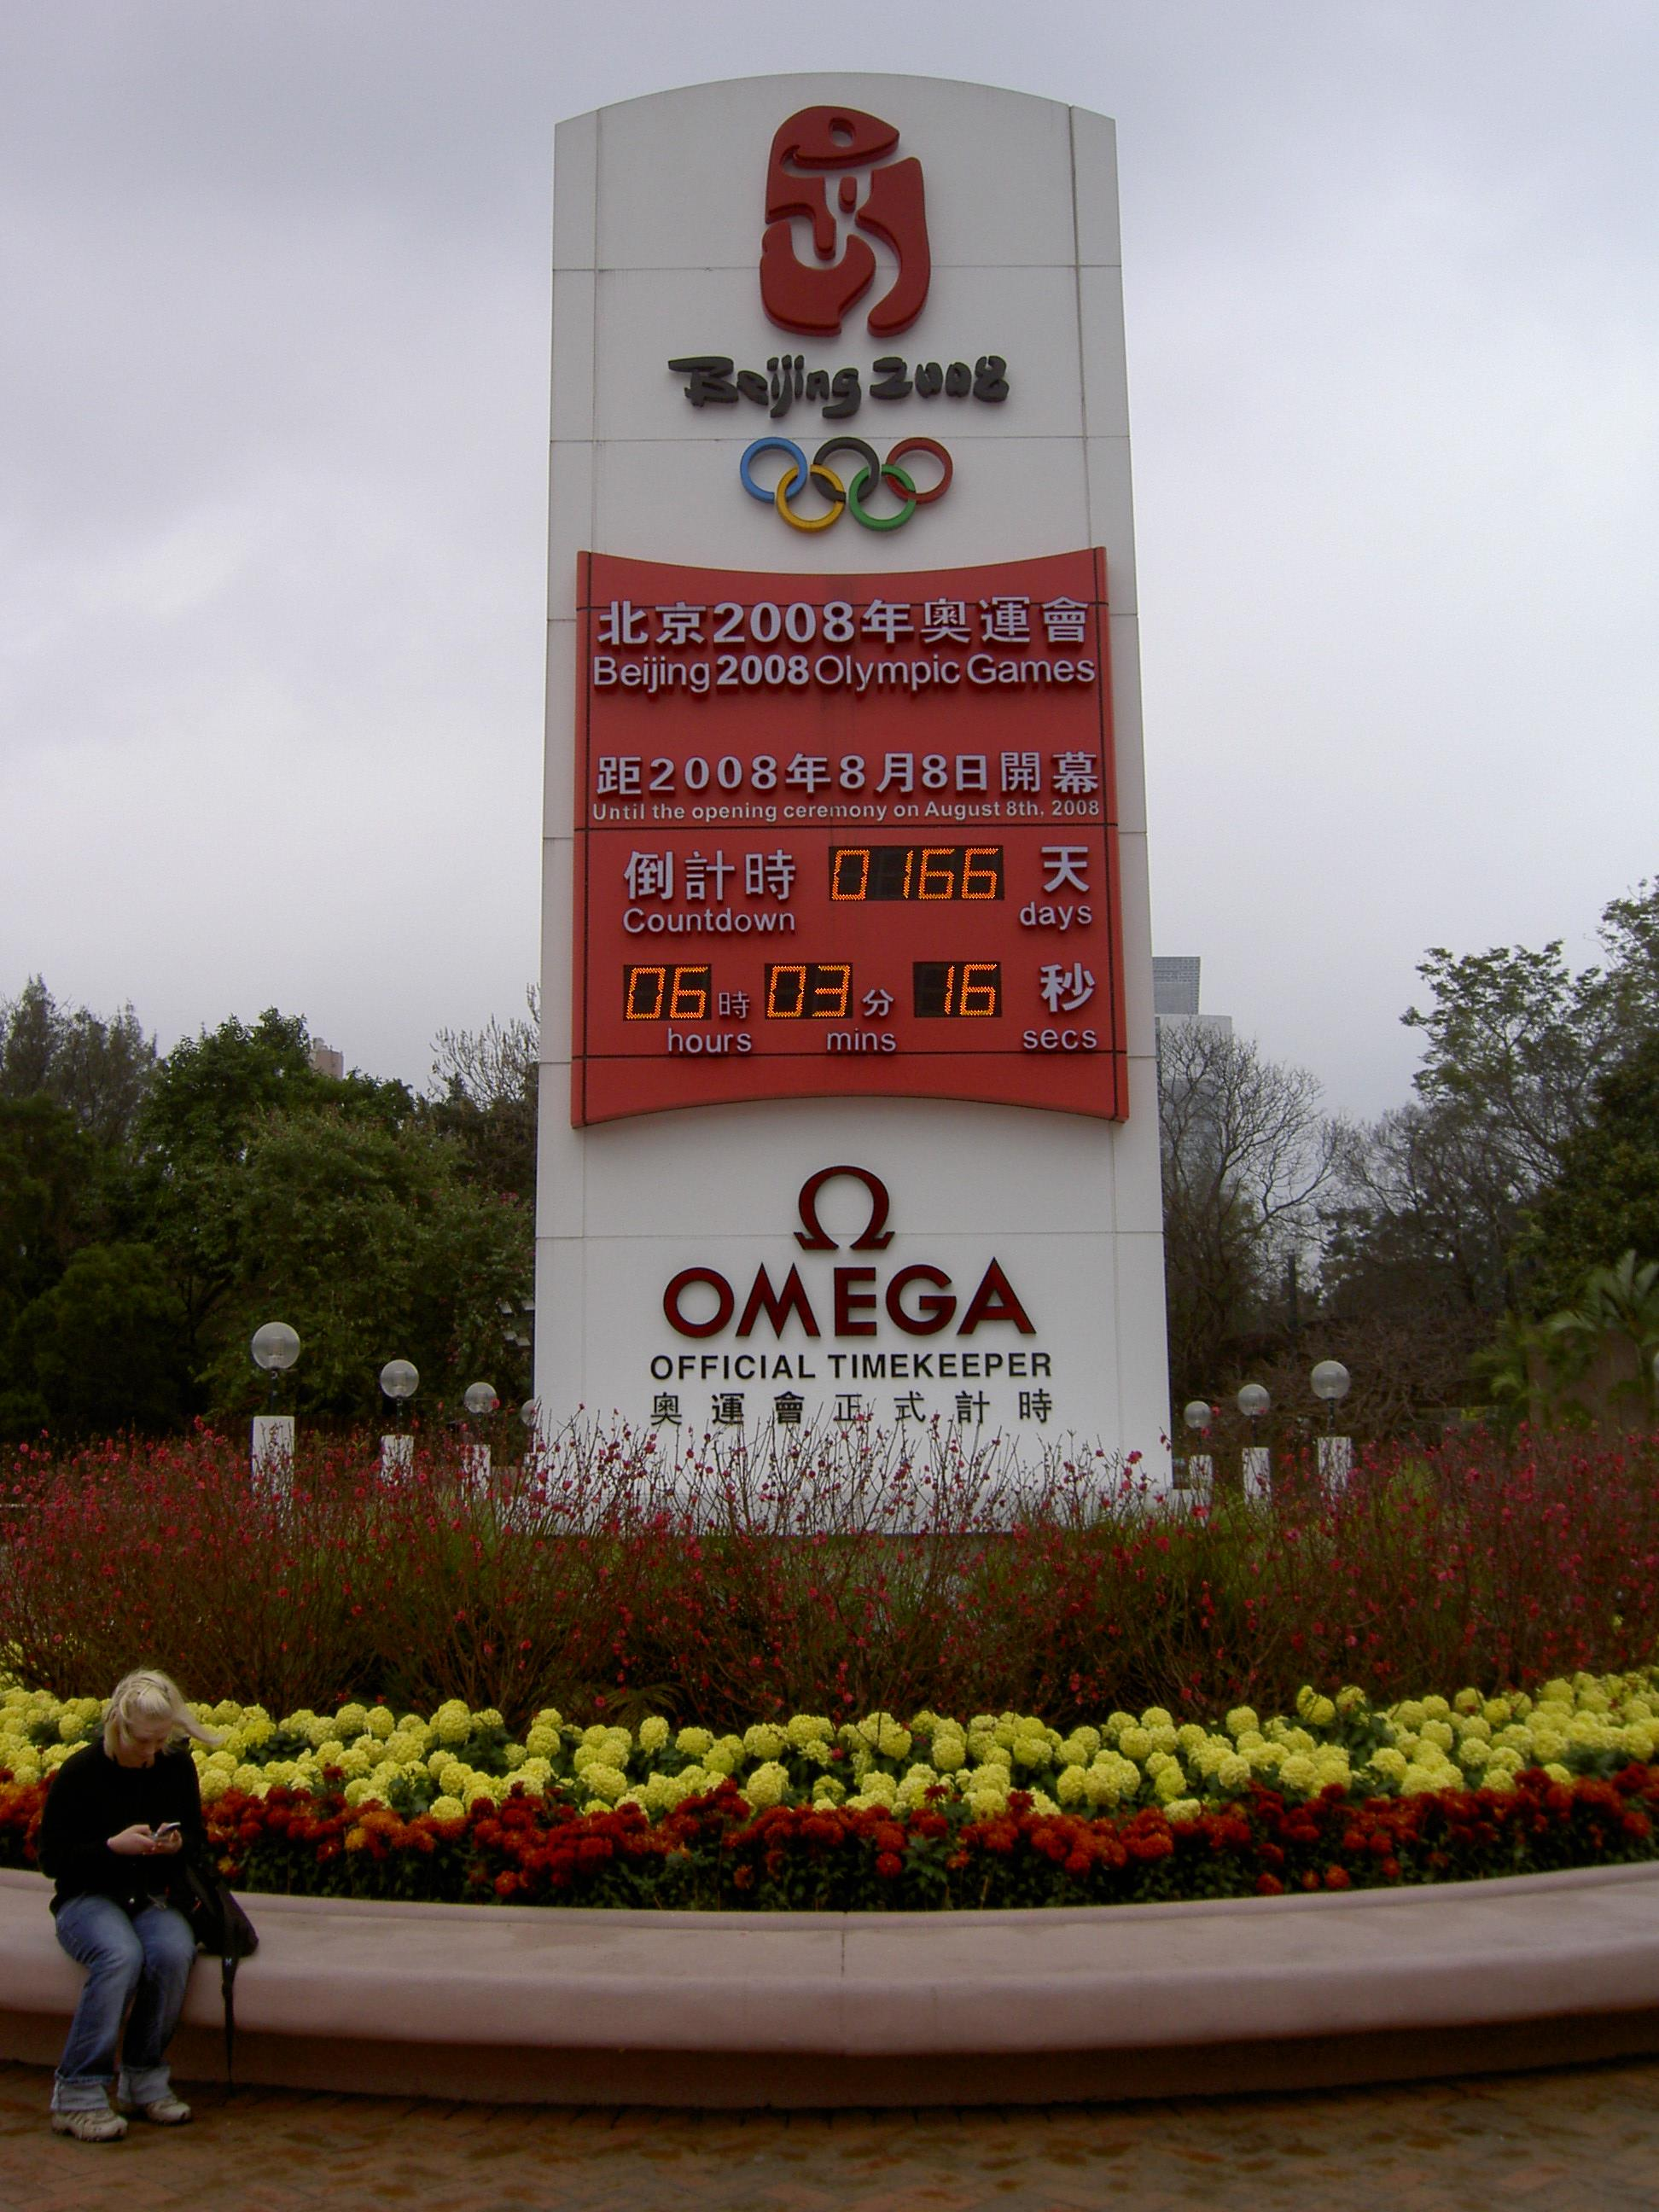 We continued walking to several parks. Here: watching the count down to the Olympics